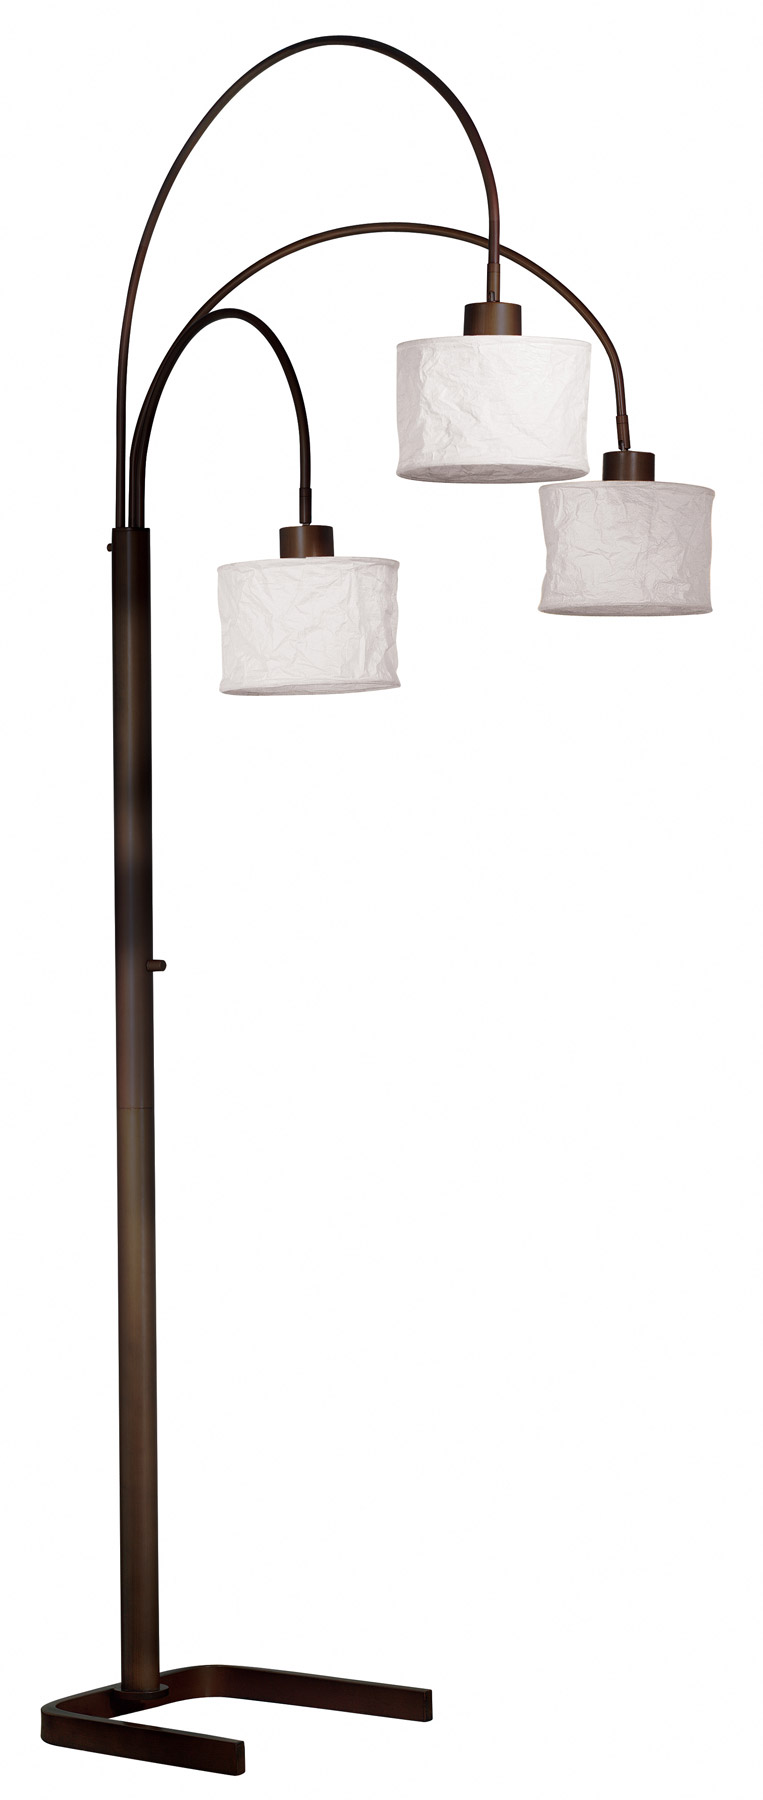 Kenroy Home 30674orb Crush Arc Floor Lamp